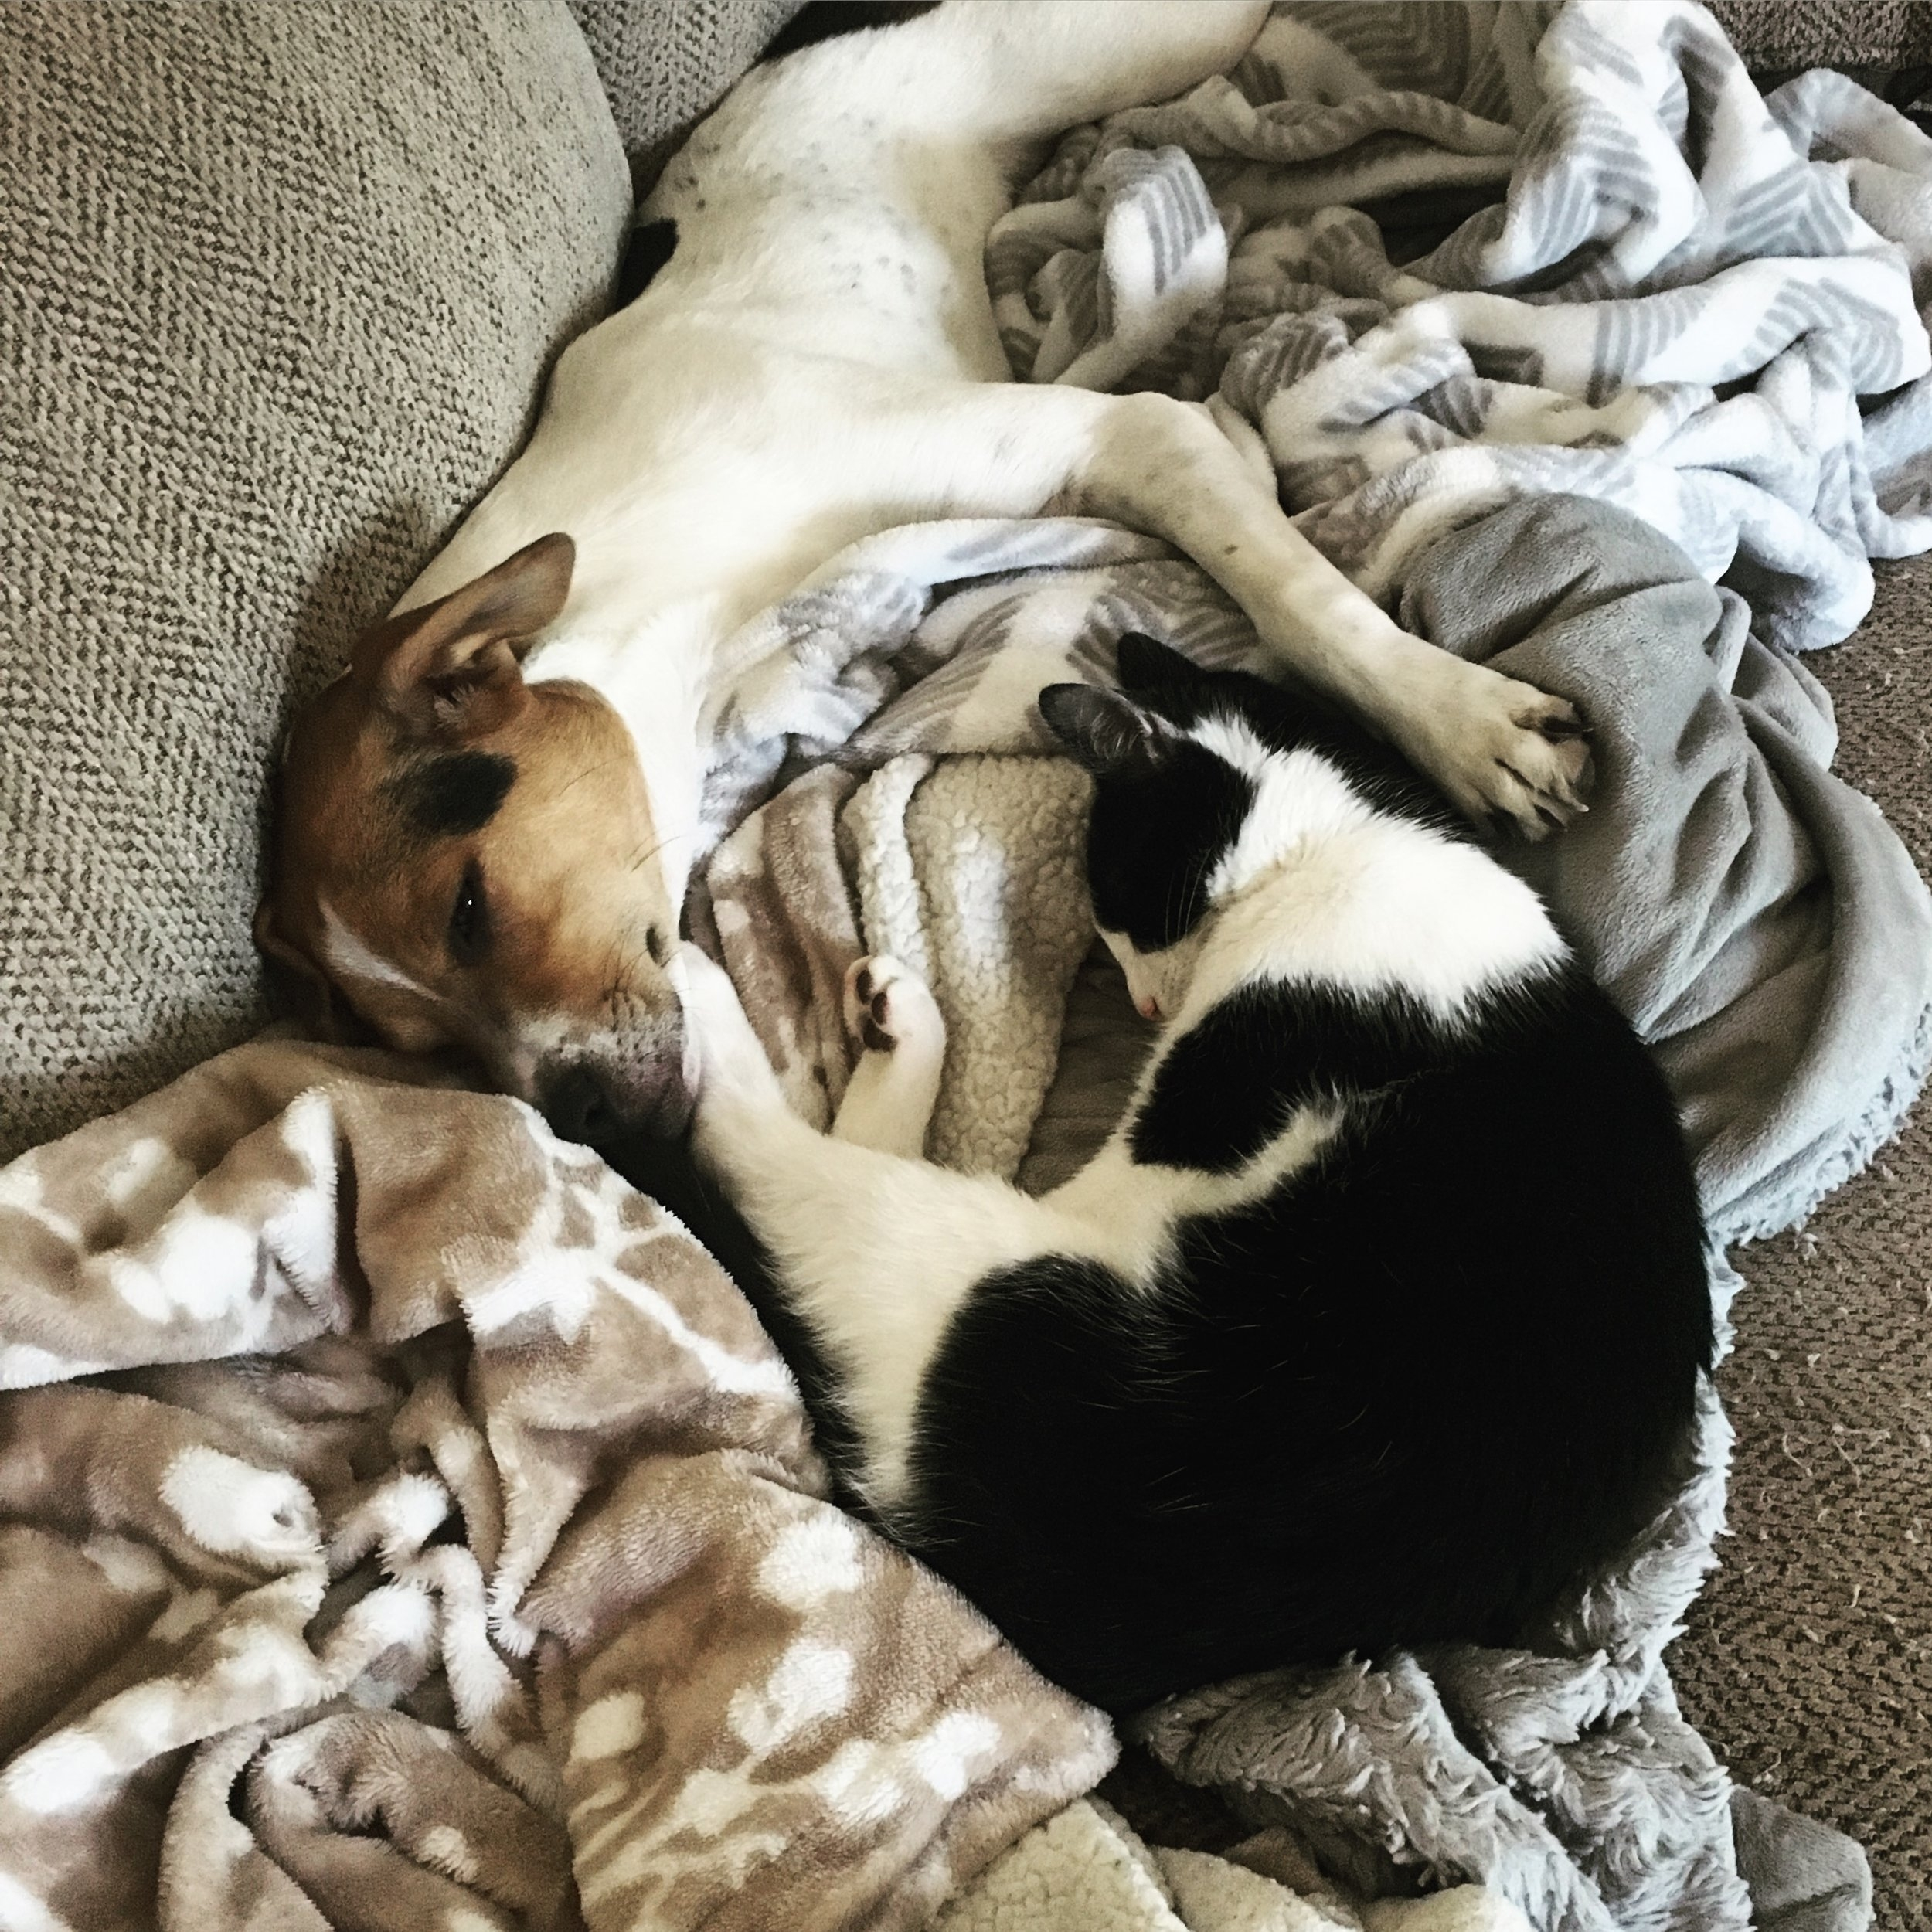 Molly & Gus love to cuddle!